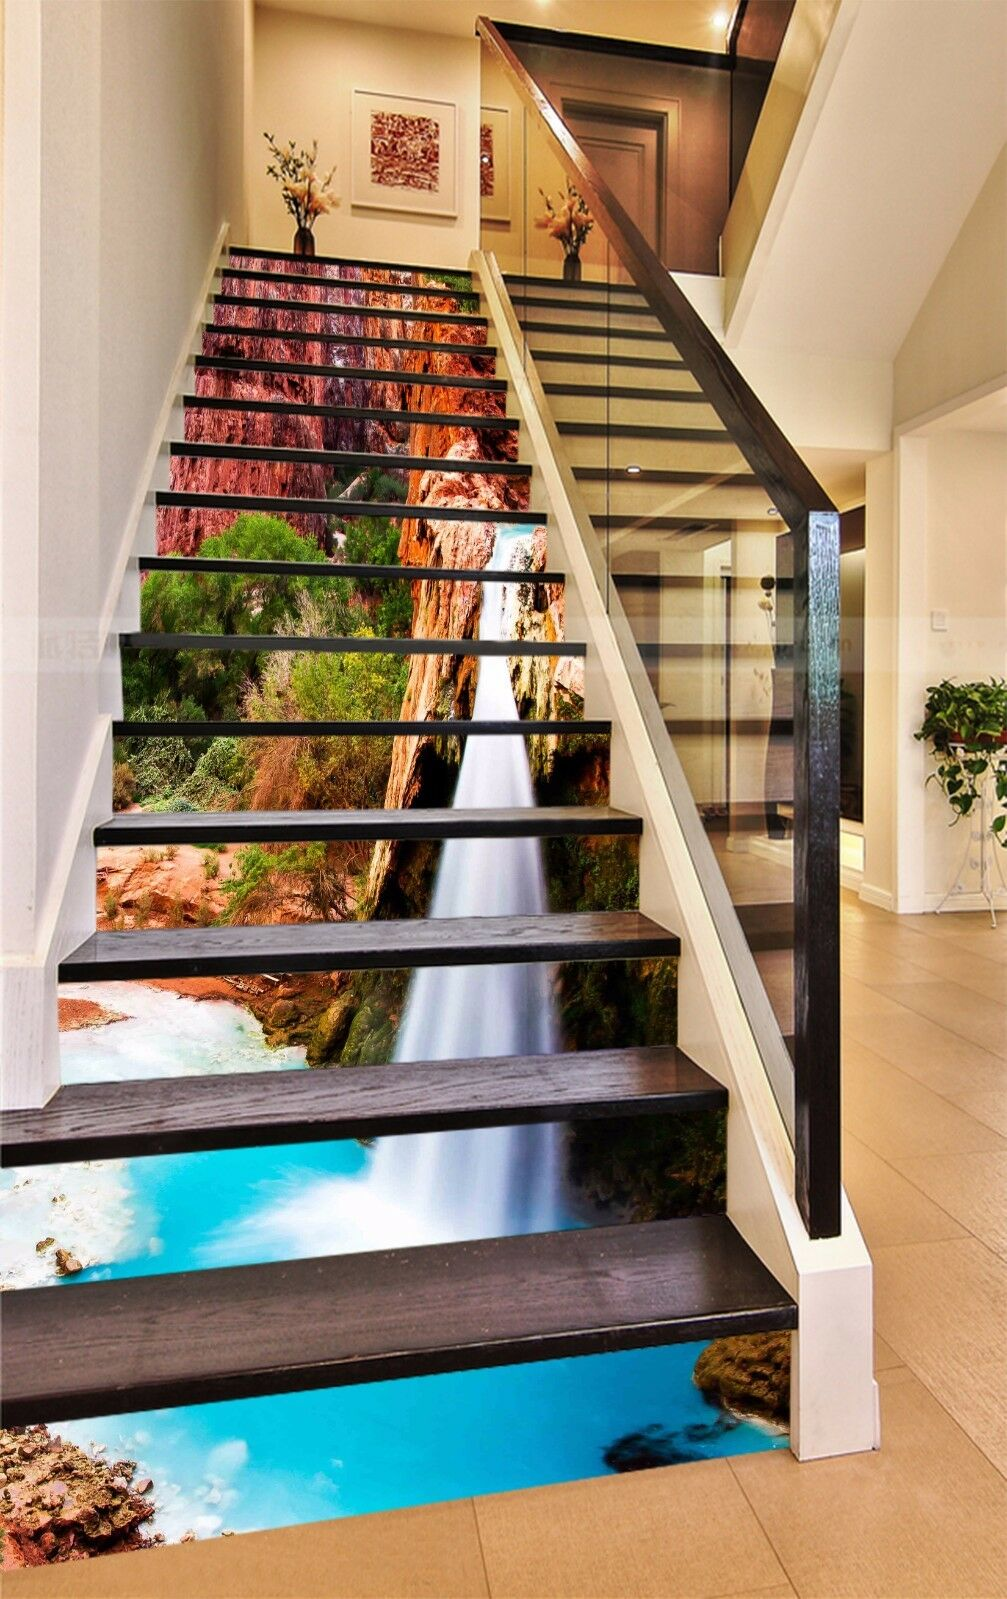 3D Canyon River 827 Stair Risers Decoration Photo Mural Vinyl Decal Wallpaper AU